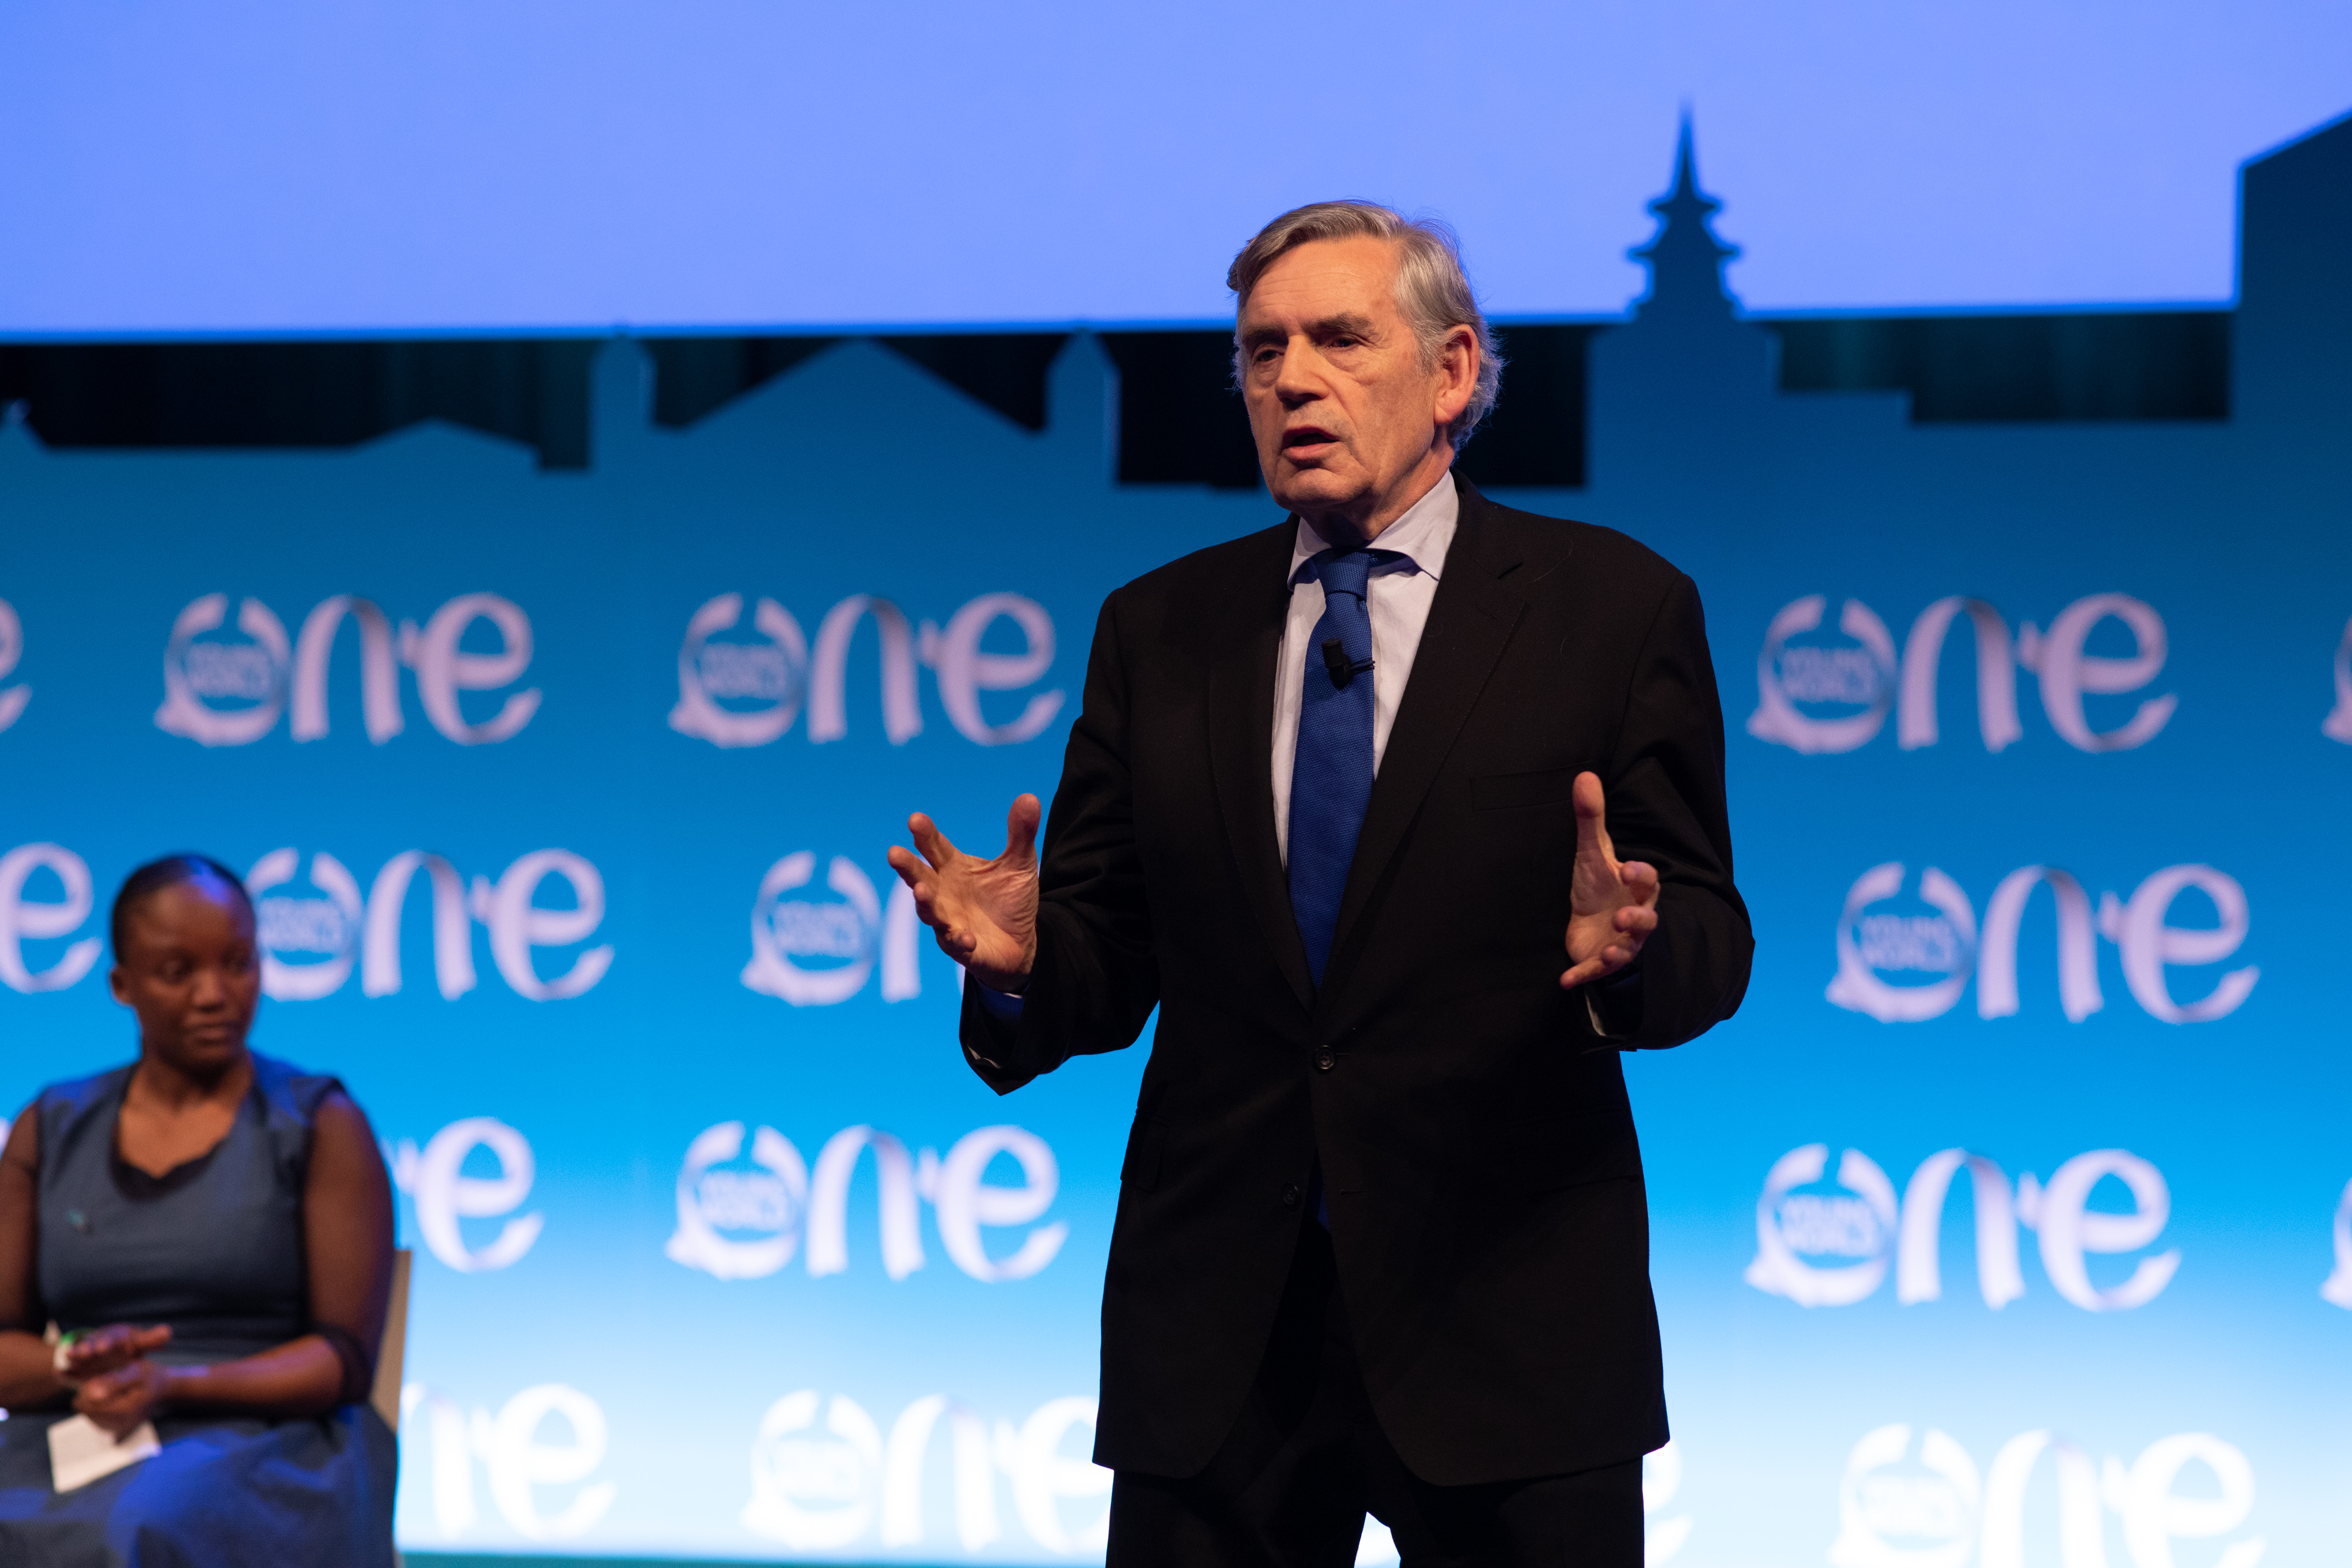 gordon brown, one young world, united nations